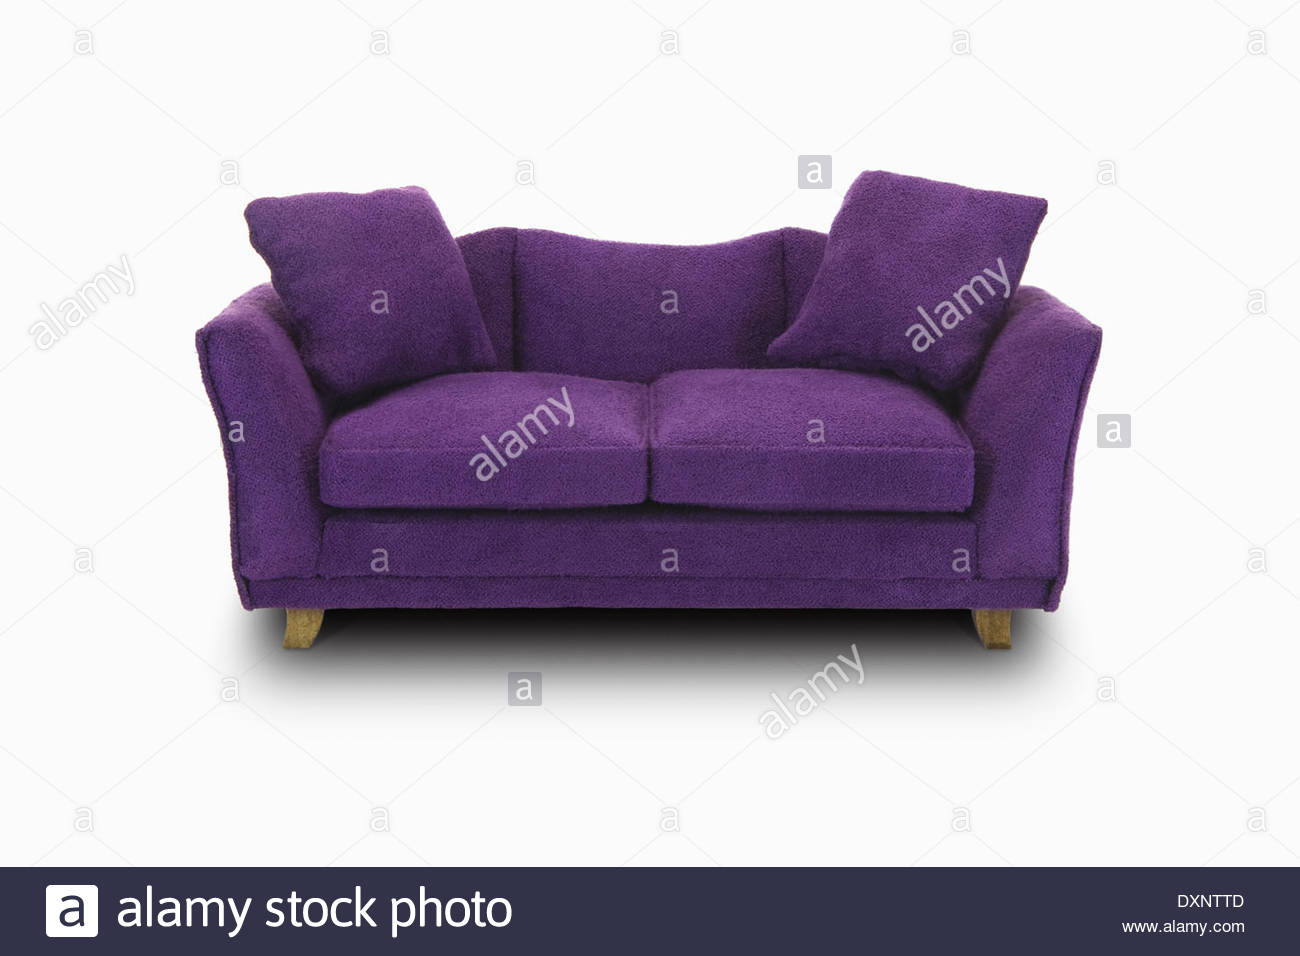 Tremendous Plum Sofa Stock Photo 68092653 Alamy Gmtry Best Dining Table And Chair Ideas Images Gmtryco